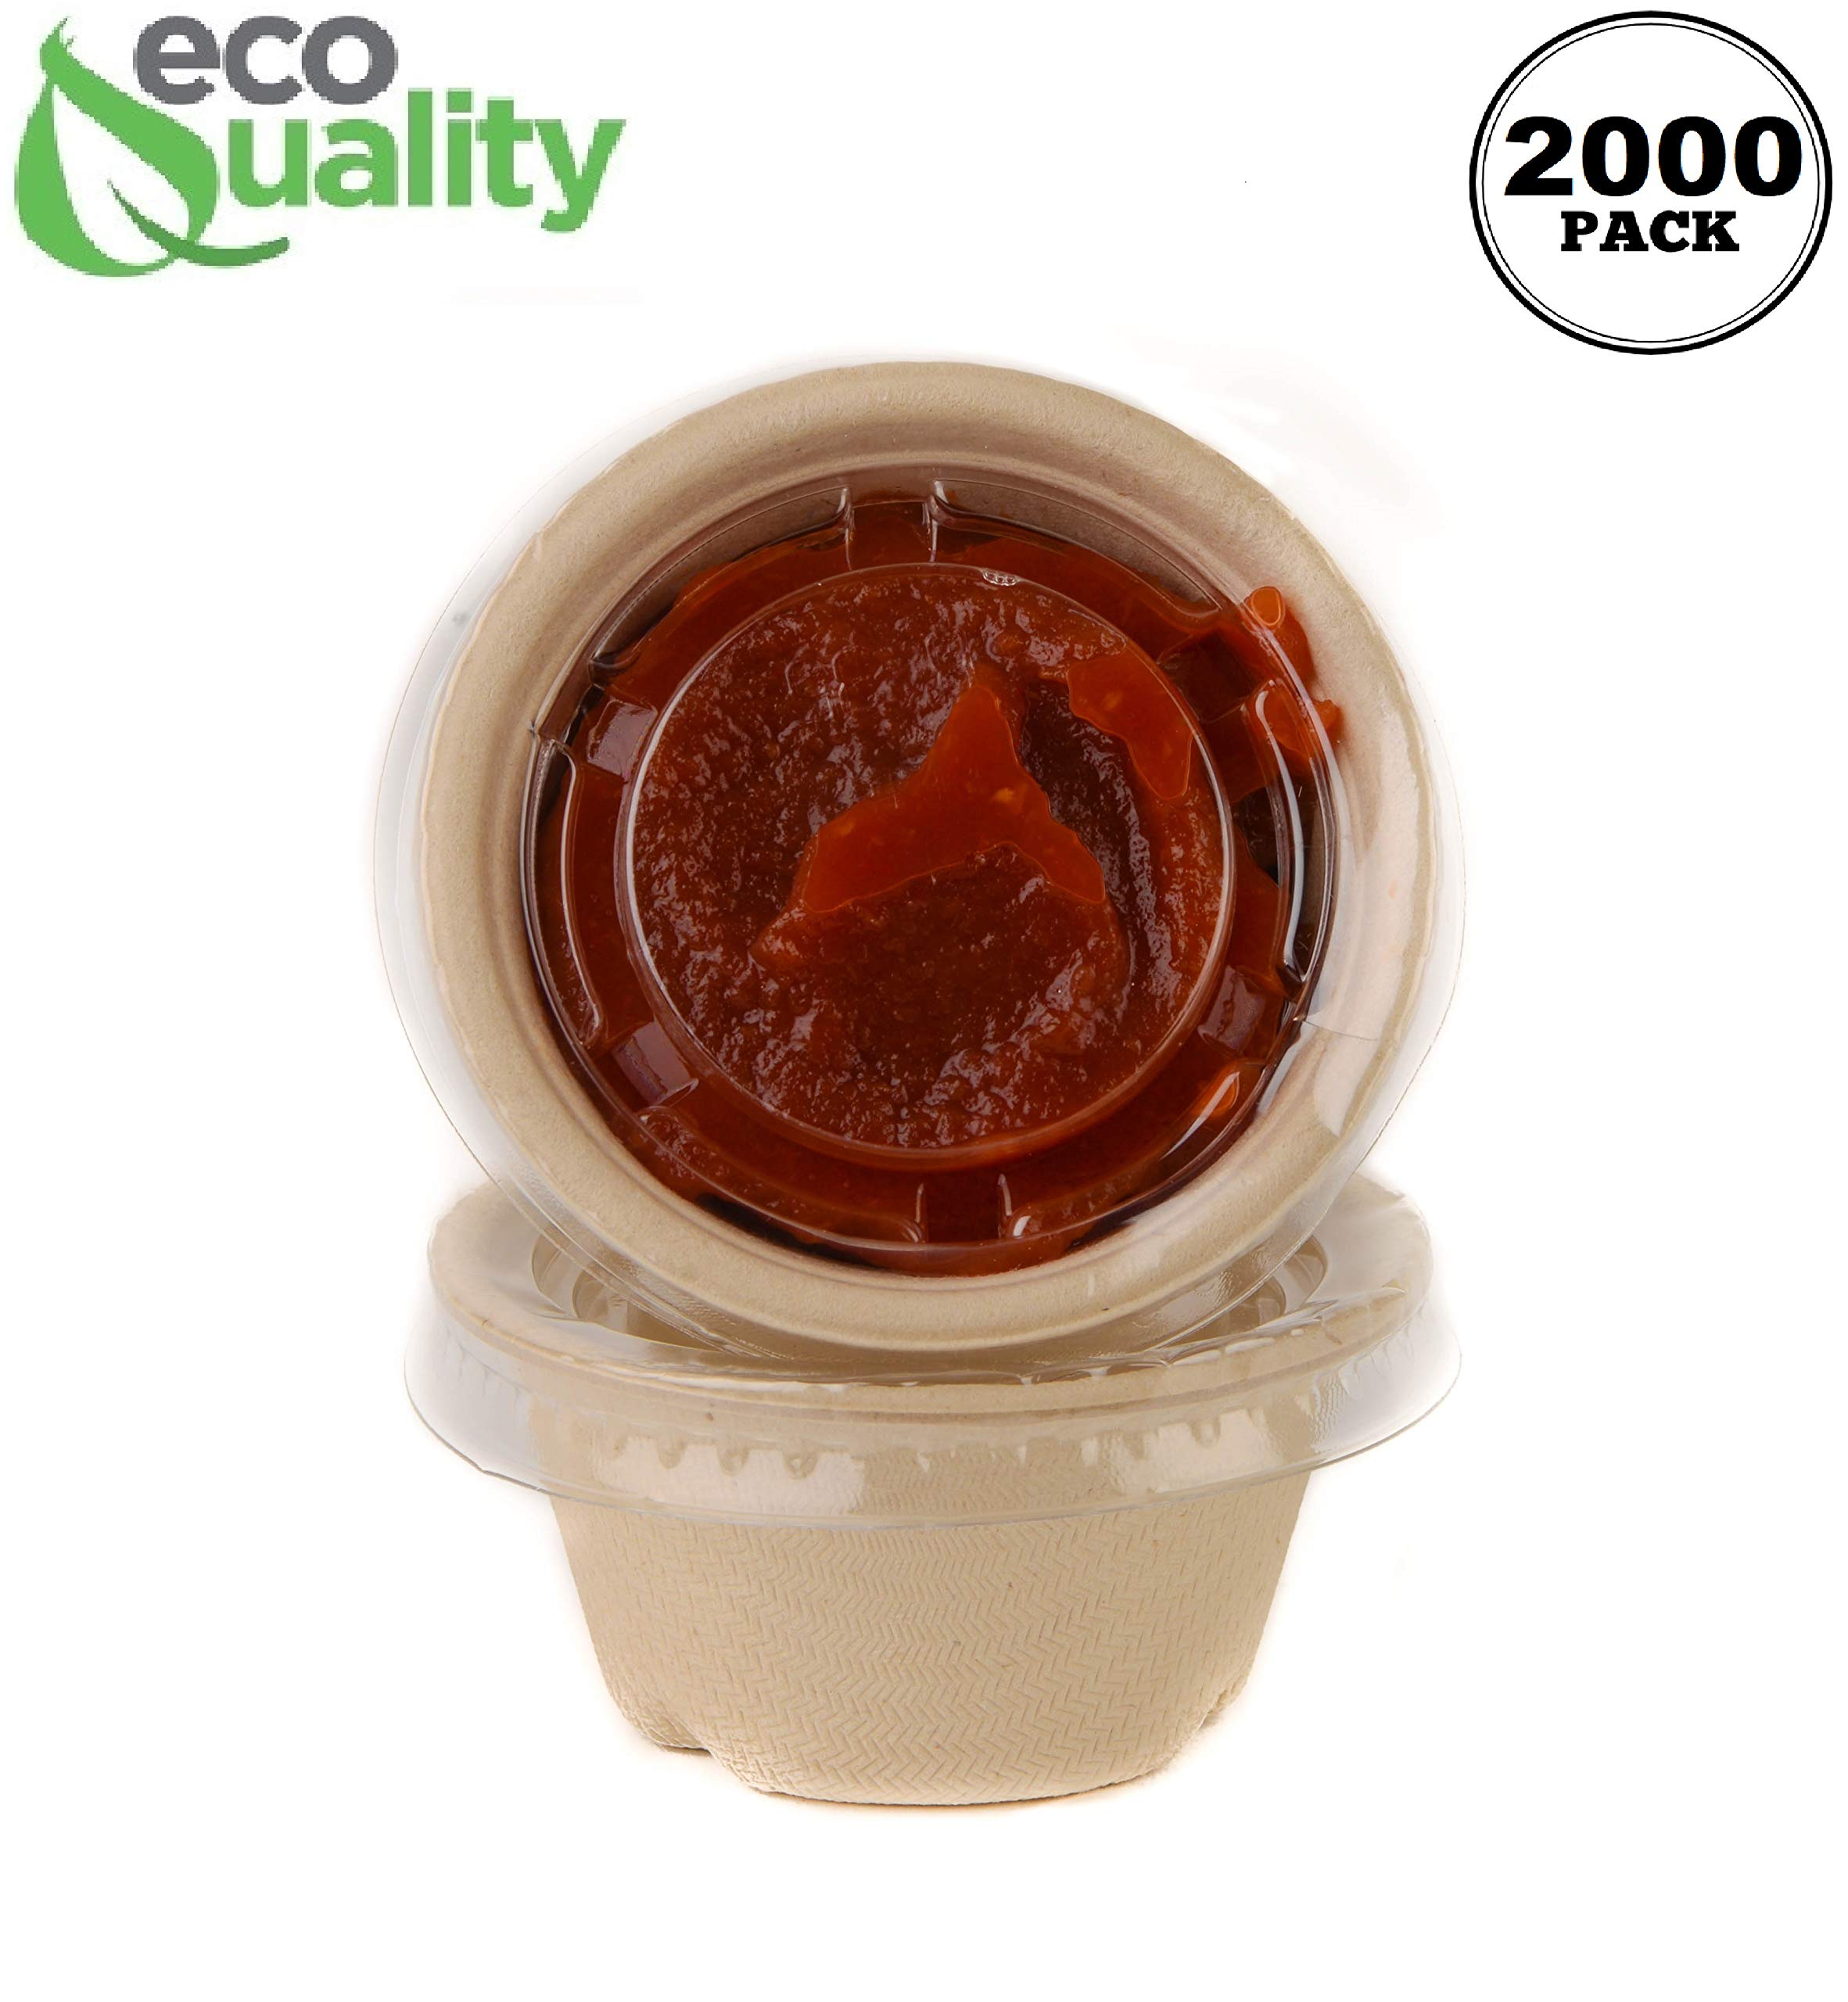 [2000 Pack] 2 Oz Compostable Condiment Souffle Bagasse Cups with Lids - Portion Cup with Lid Sugarcane, Biodegradable Perfect for Sauces, Samples, Condiments, Slime, Jello Shot, Food Storage